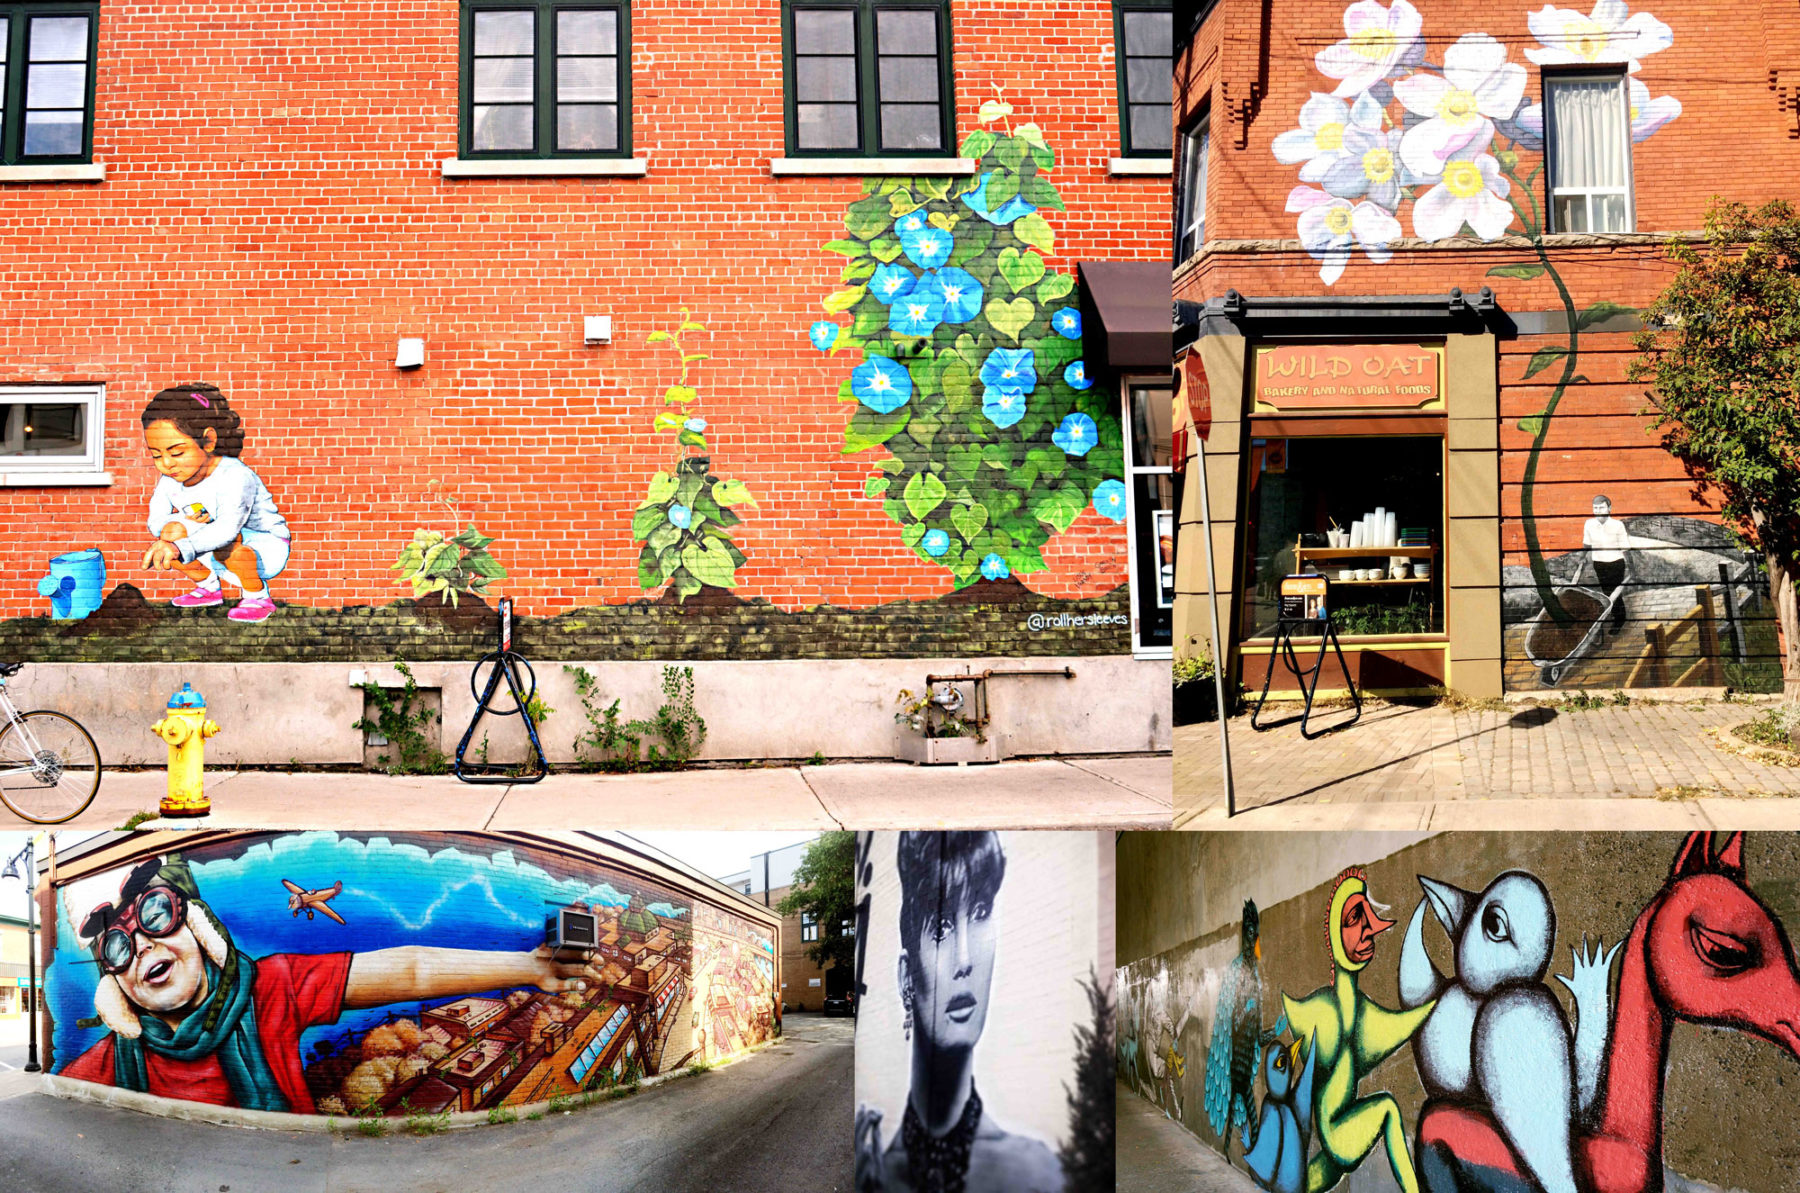 Calling all artists! Glebe Mural Submissions now open